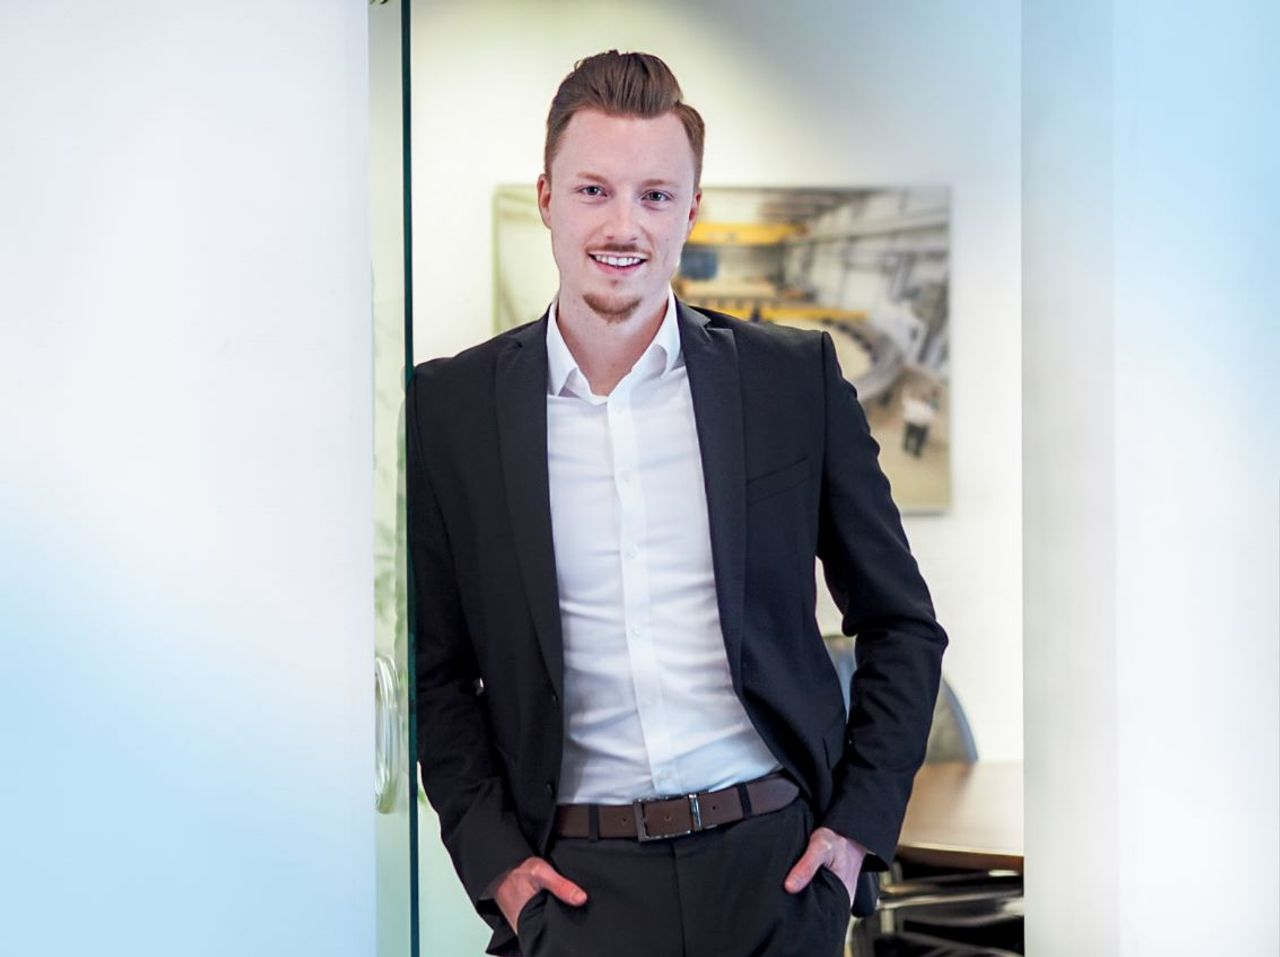 Niklas Barrenpohl smiling, standing in a door, leaning against a wall in front of an office